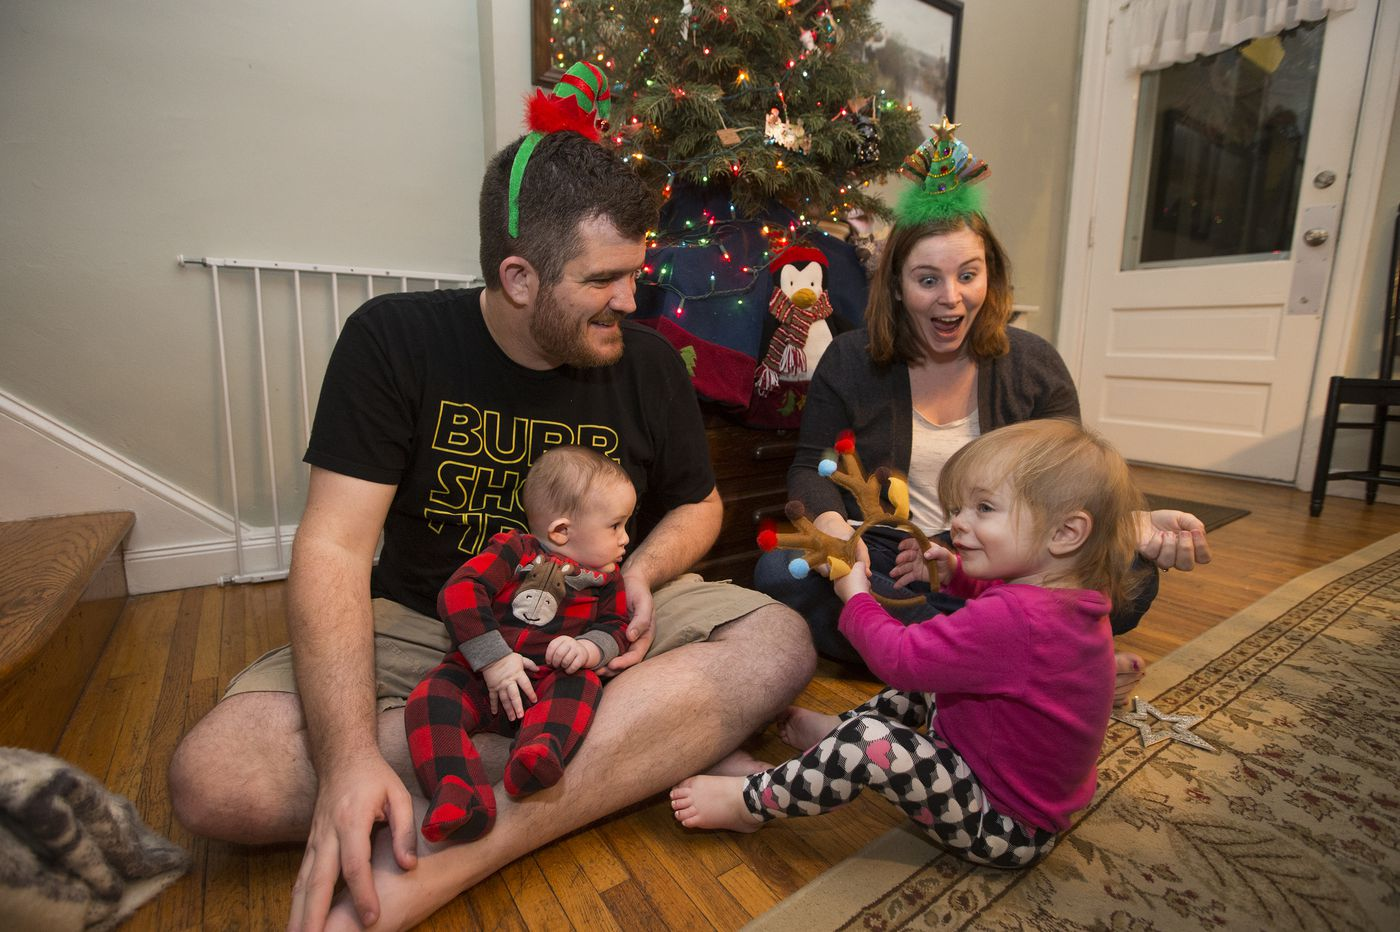 Holiday breaks bring child-care headache for working parents